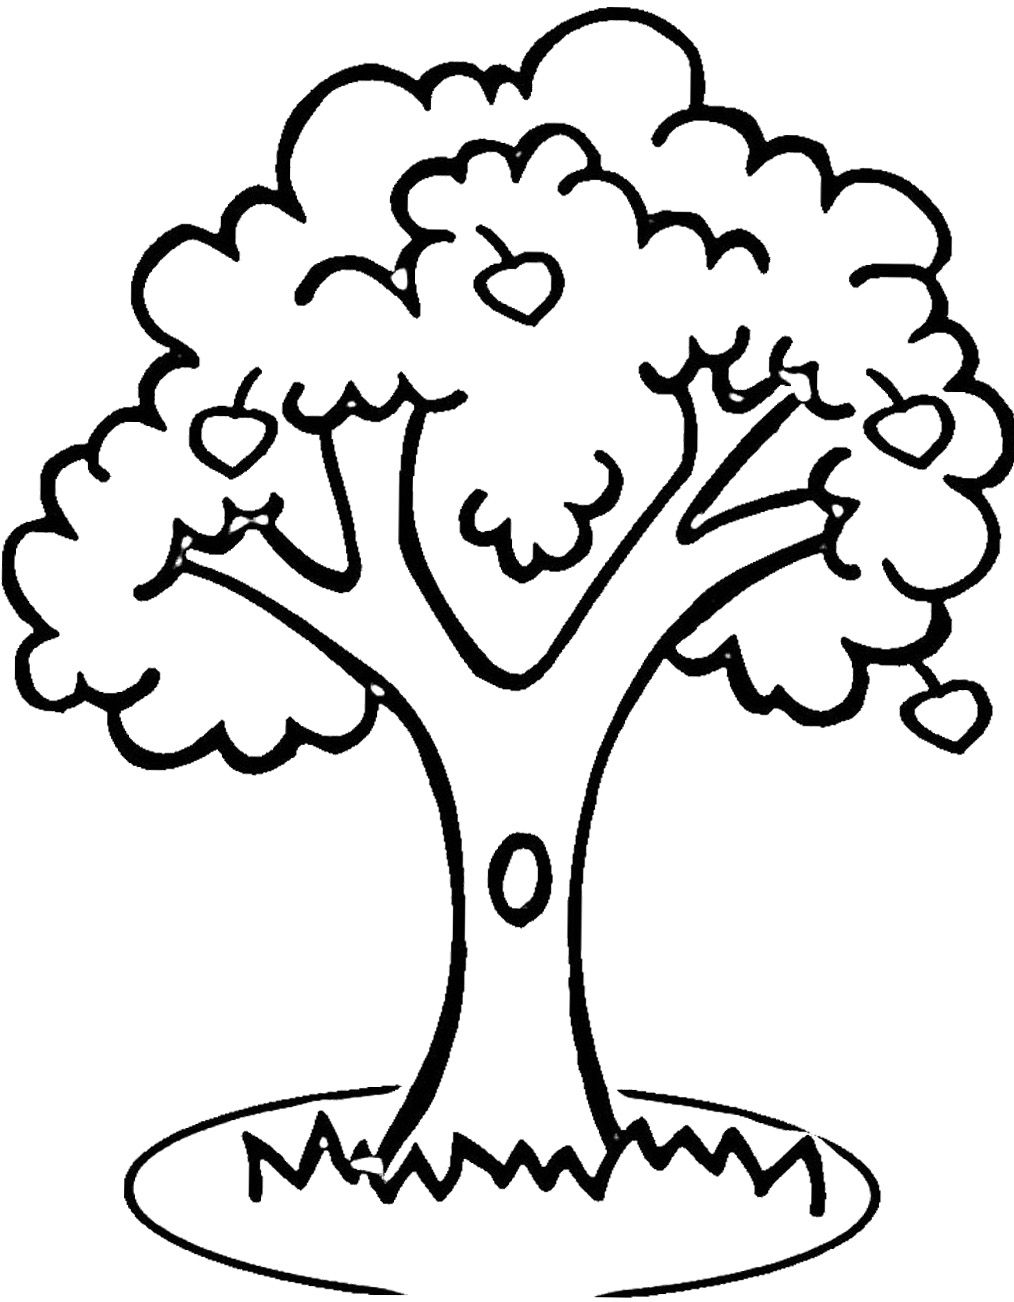 apple tree pictures to color apple tree coloring page in 2020 easy coloring pages to color tree apple pictures